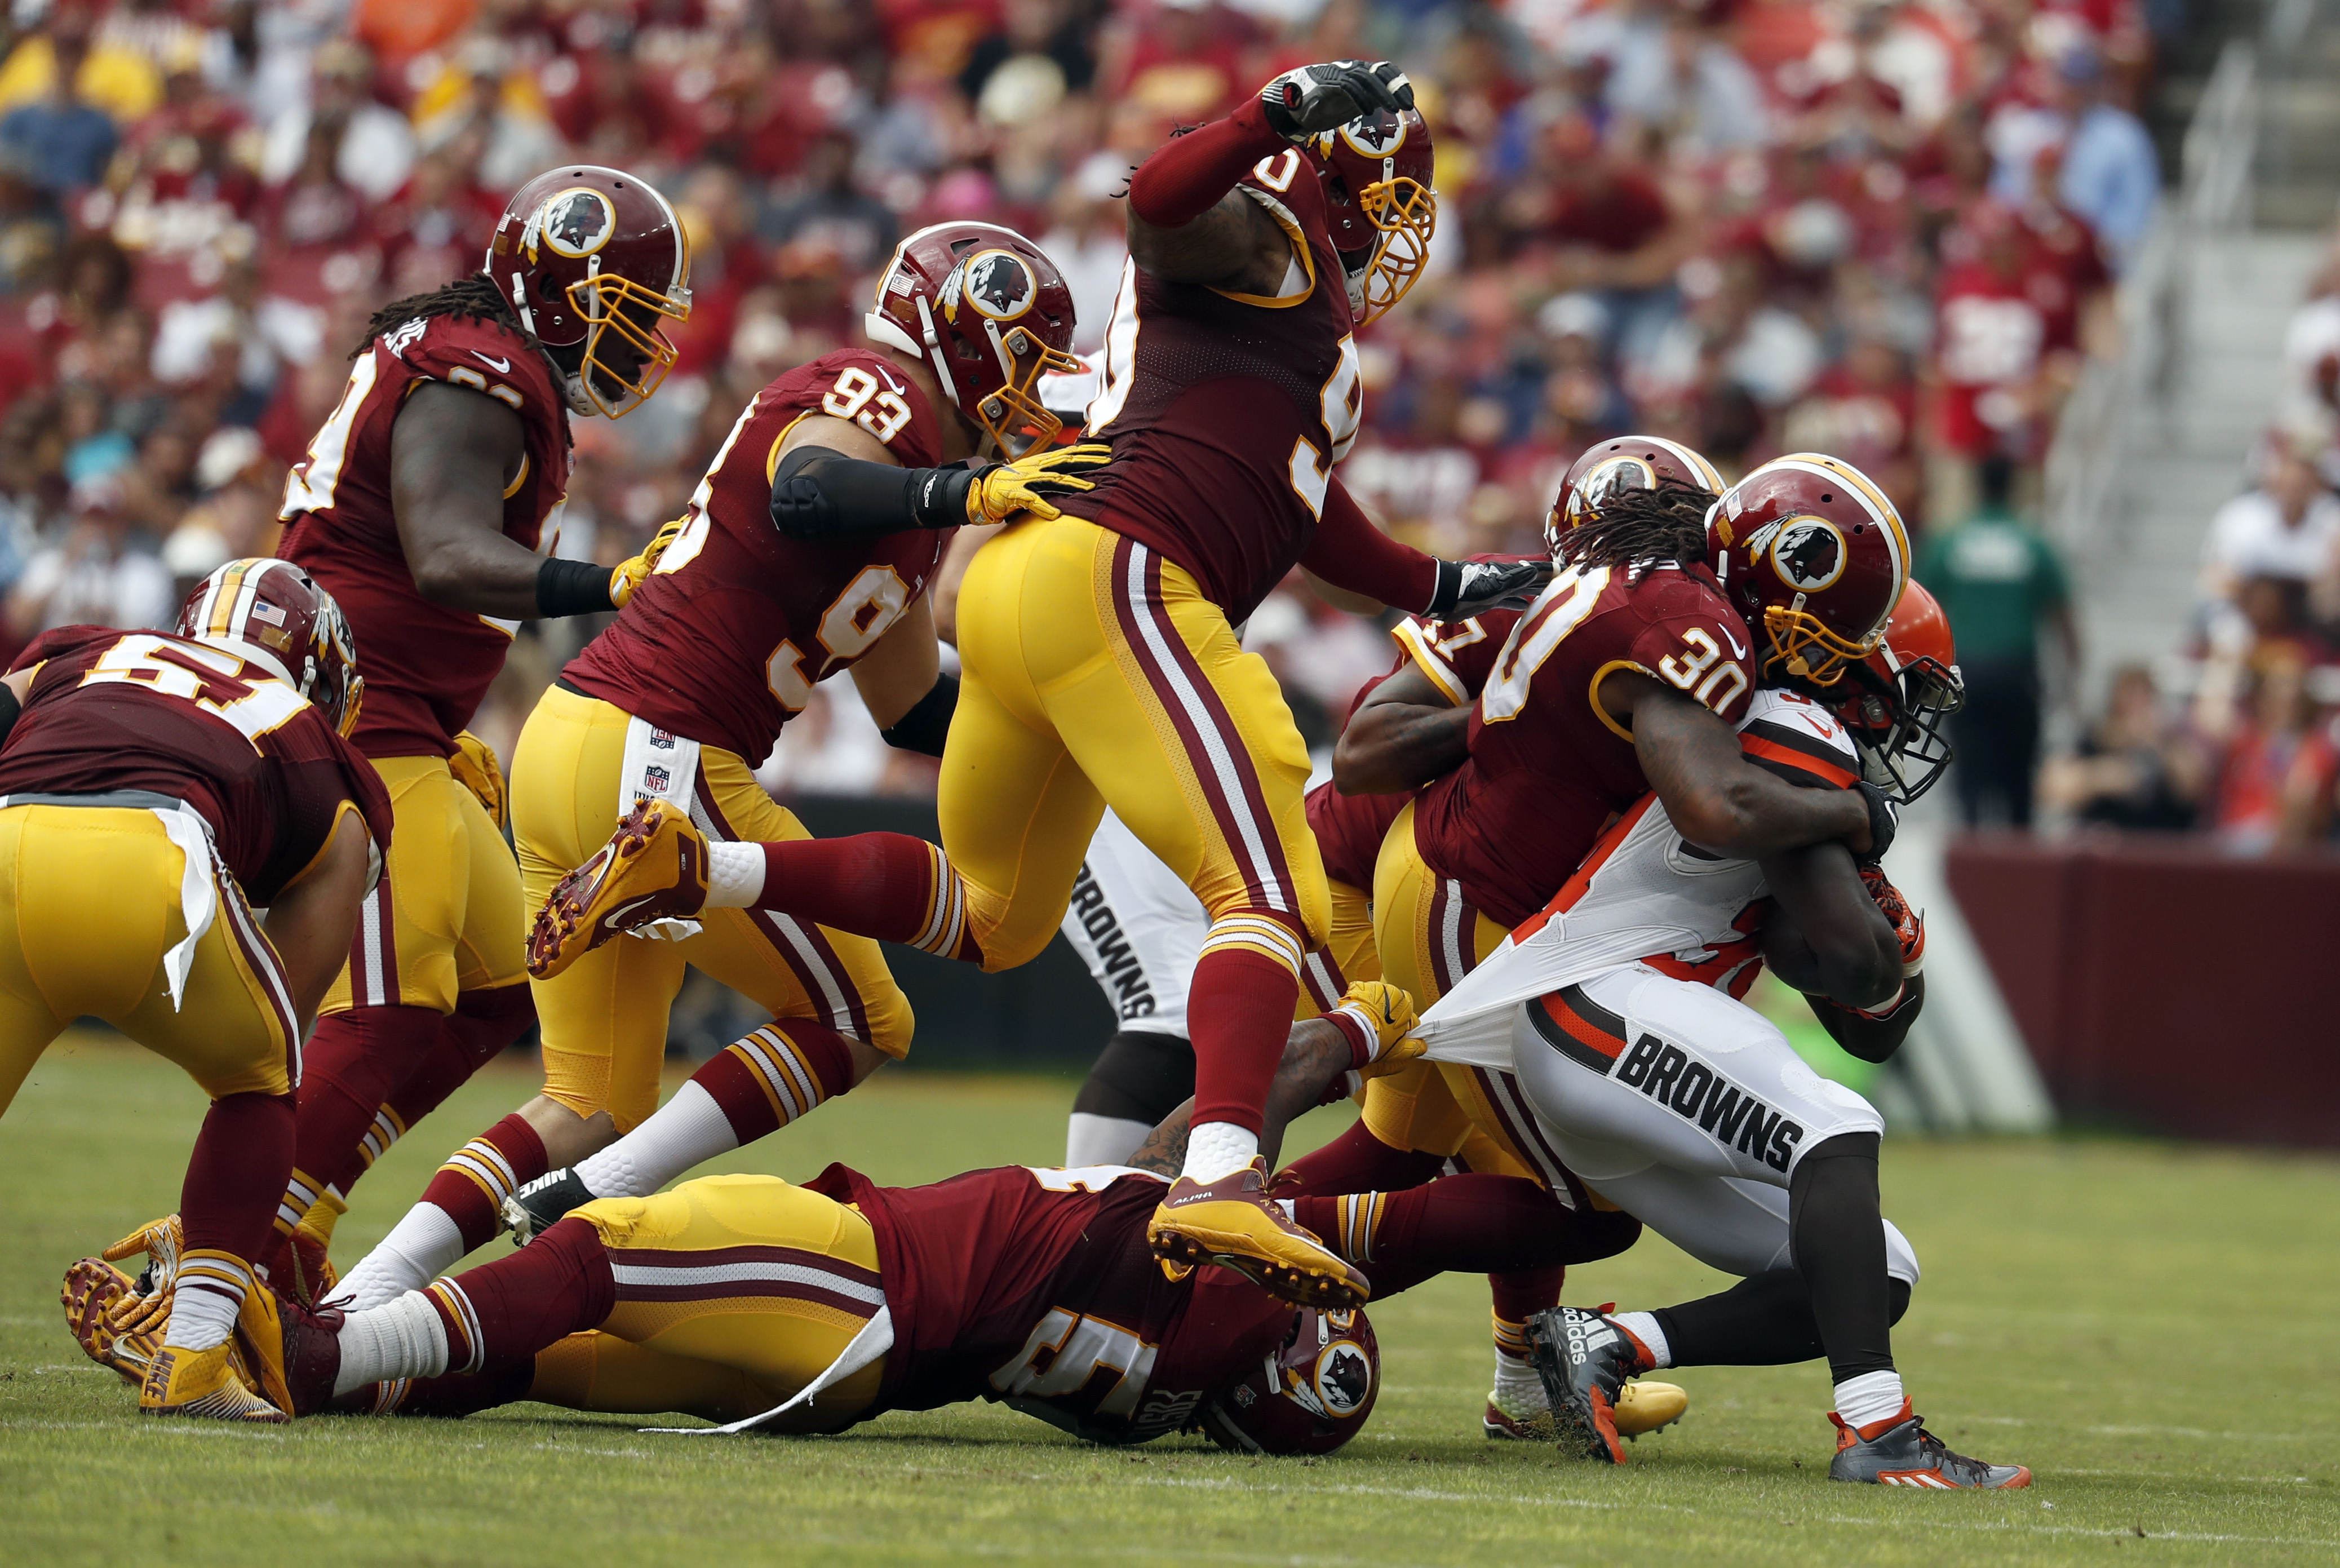 Cleveland Browns running back Isaiah Crowell (34) is tackled by Washington Redskins strong safety David Bruton (30) and others, during the first half of an NFL football game Sunday, Oct. 2, 2016, in Landover, Md. The Redskins won 31-20. (AP Photo/Carolyn